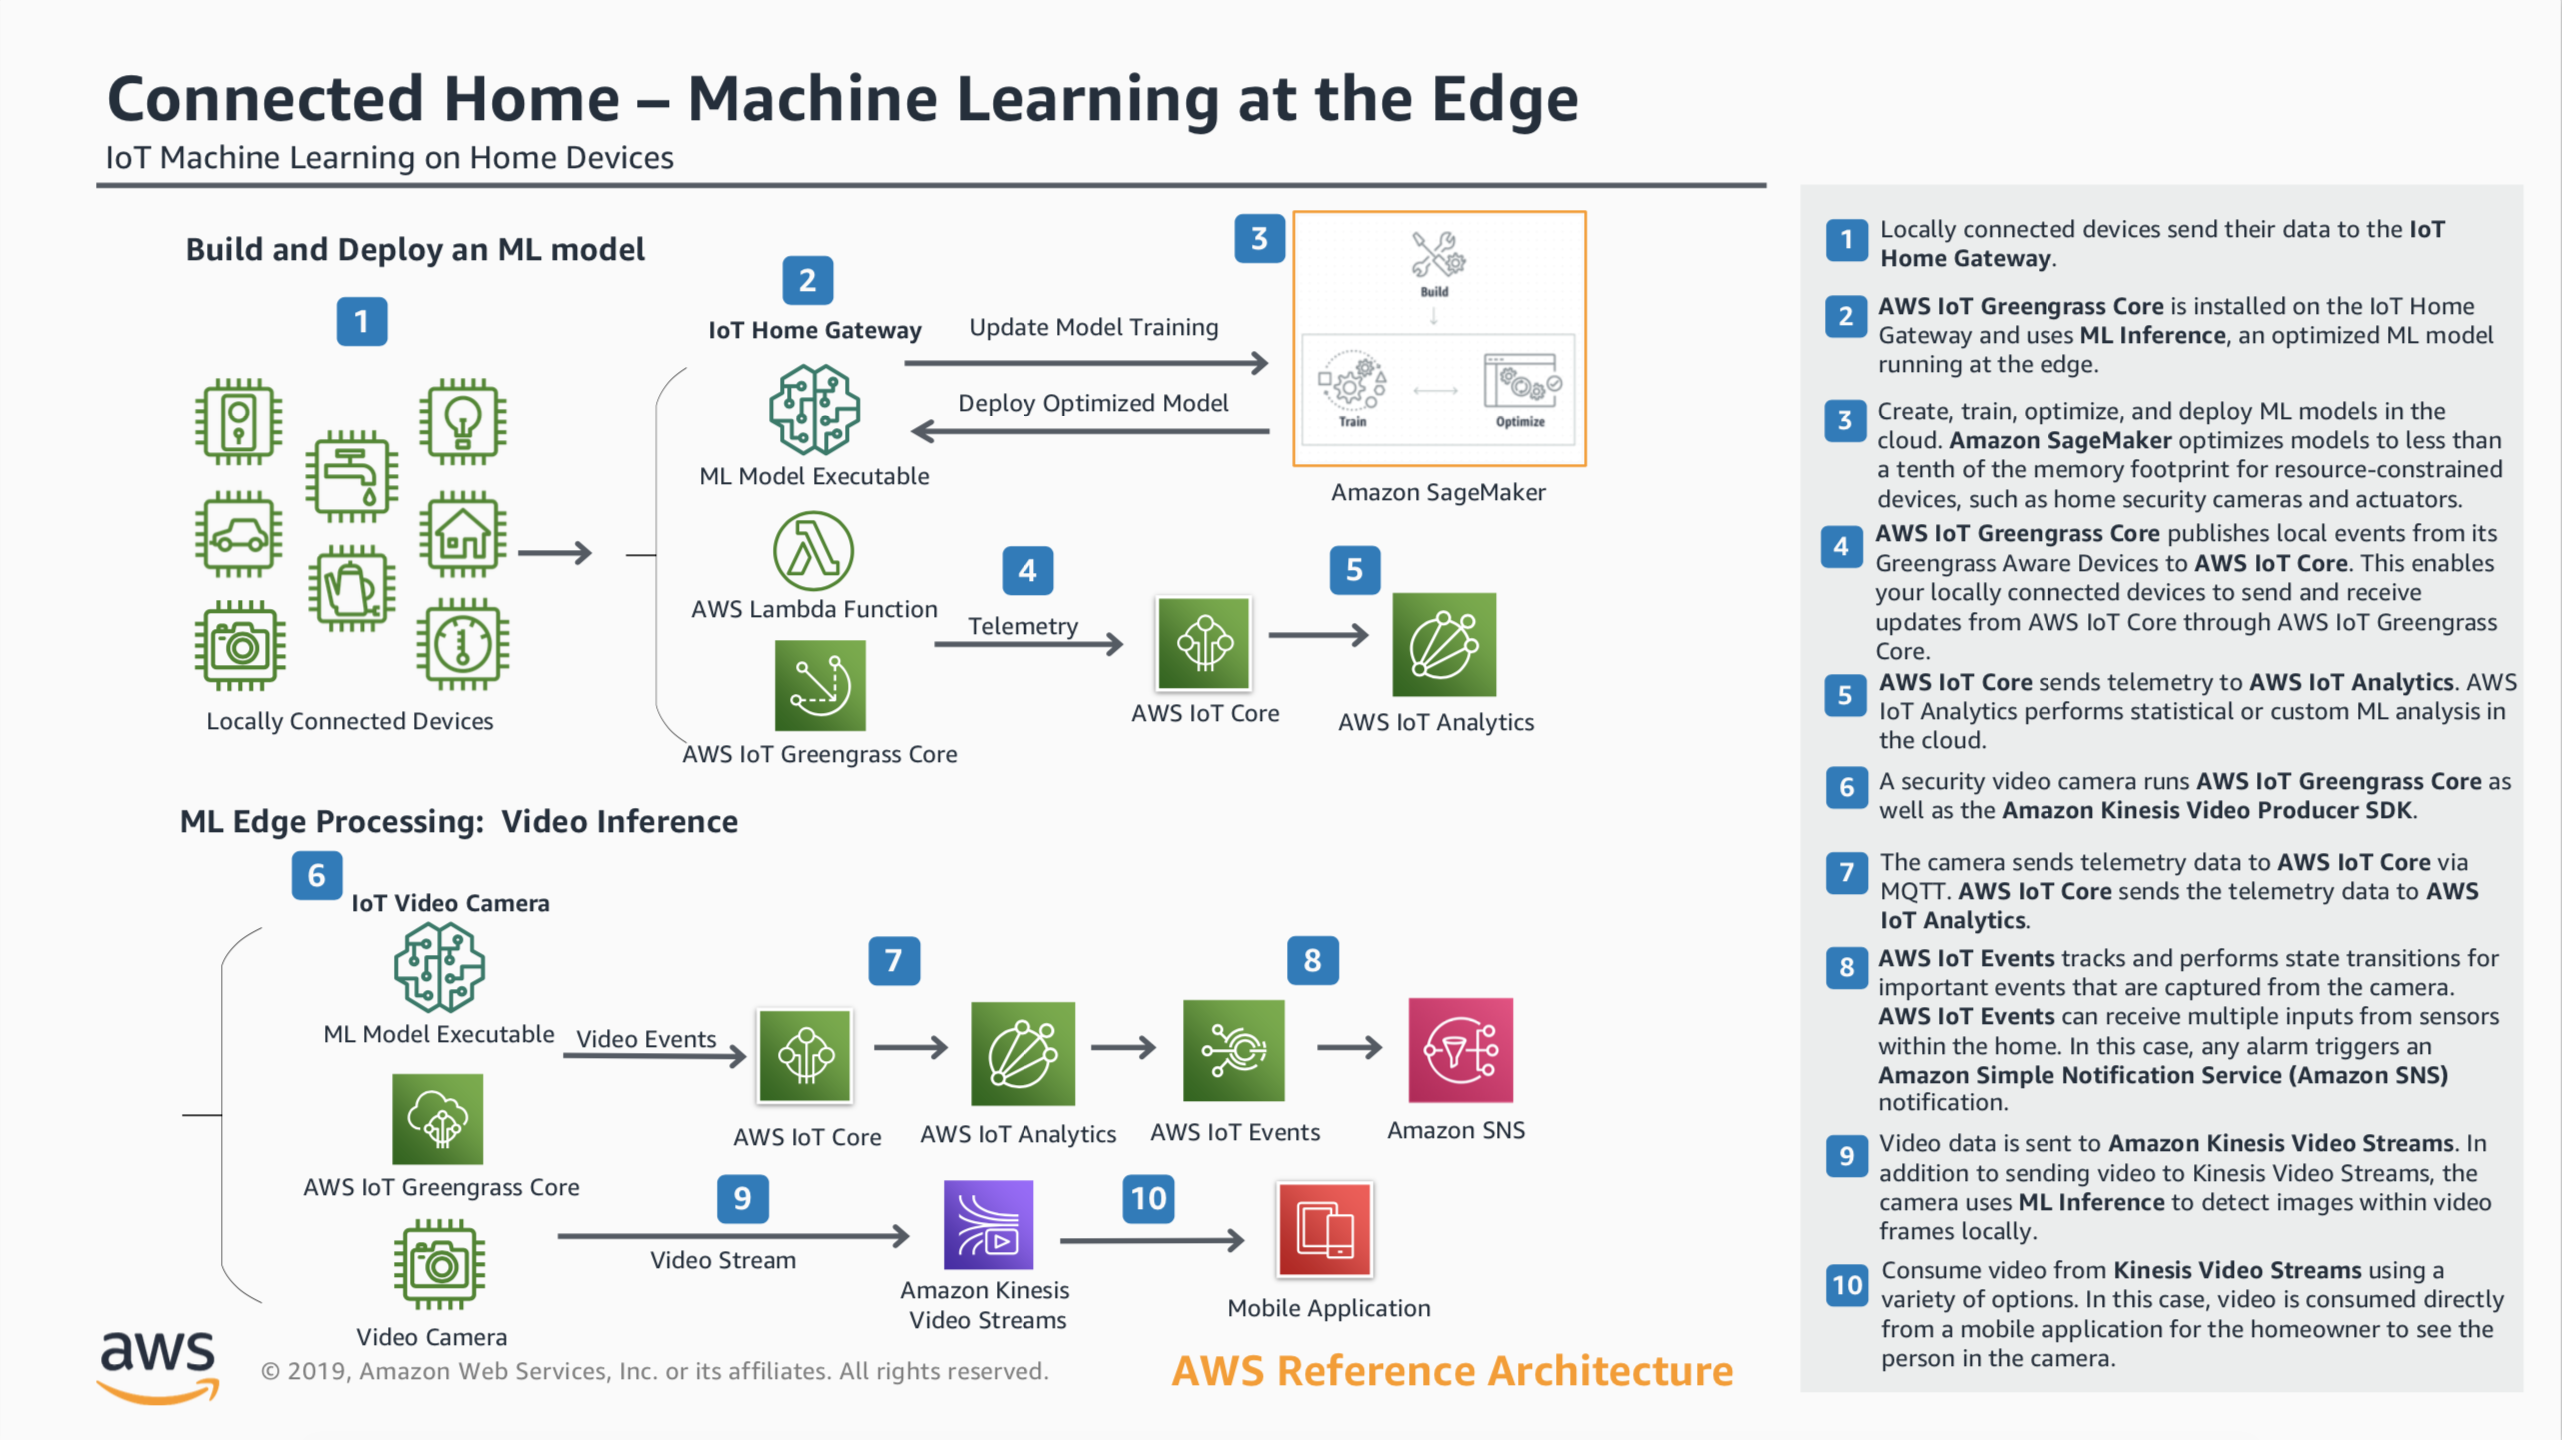 Connected Home - Machine Learning at the Edge Reference Architecture